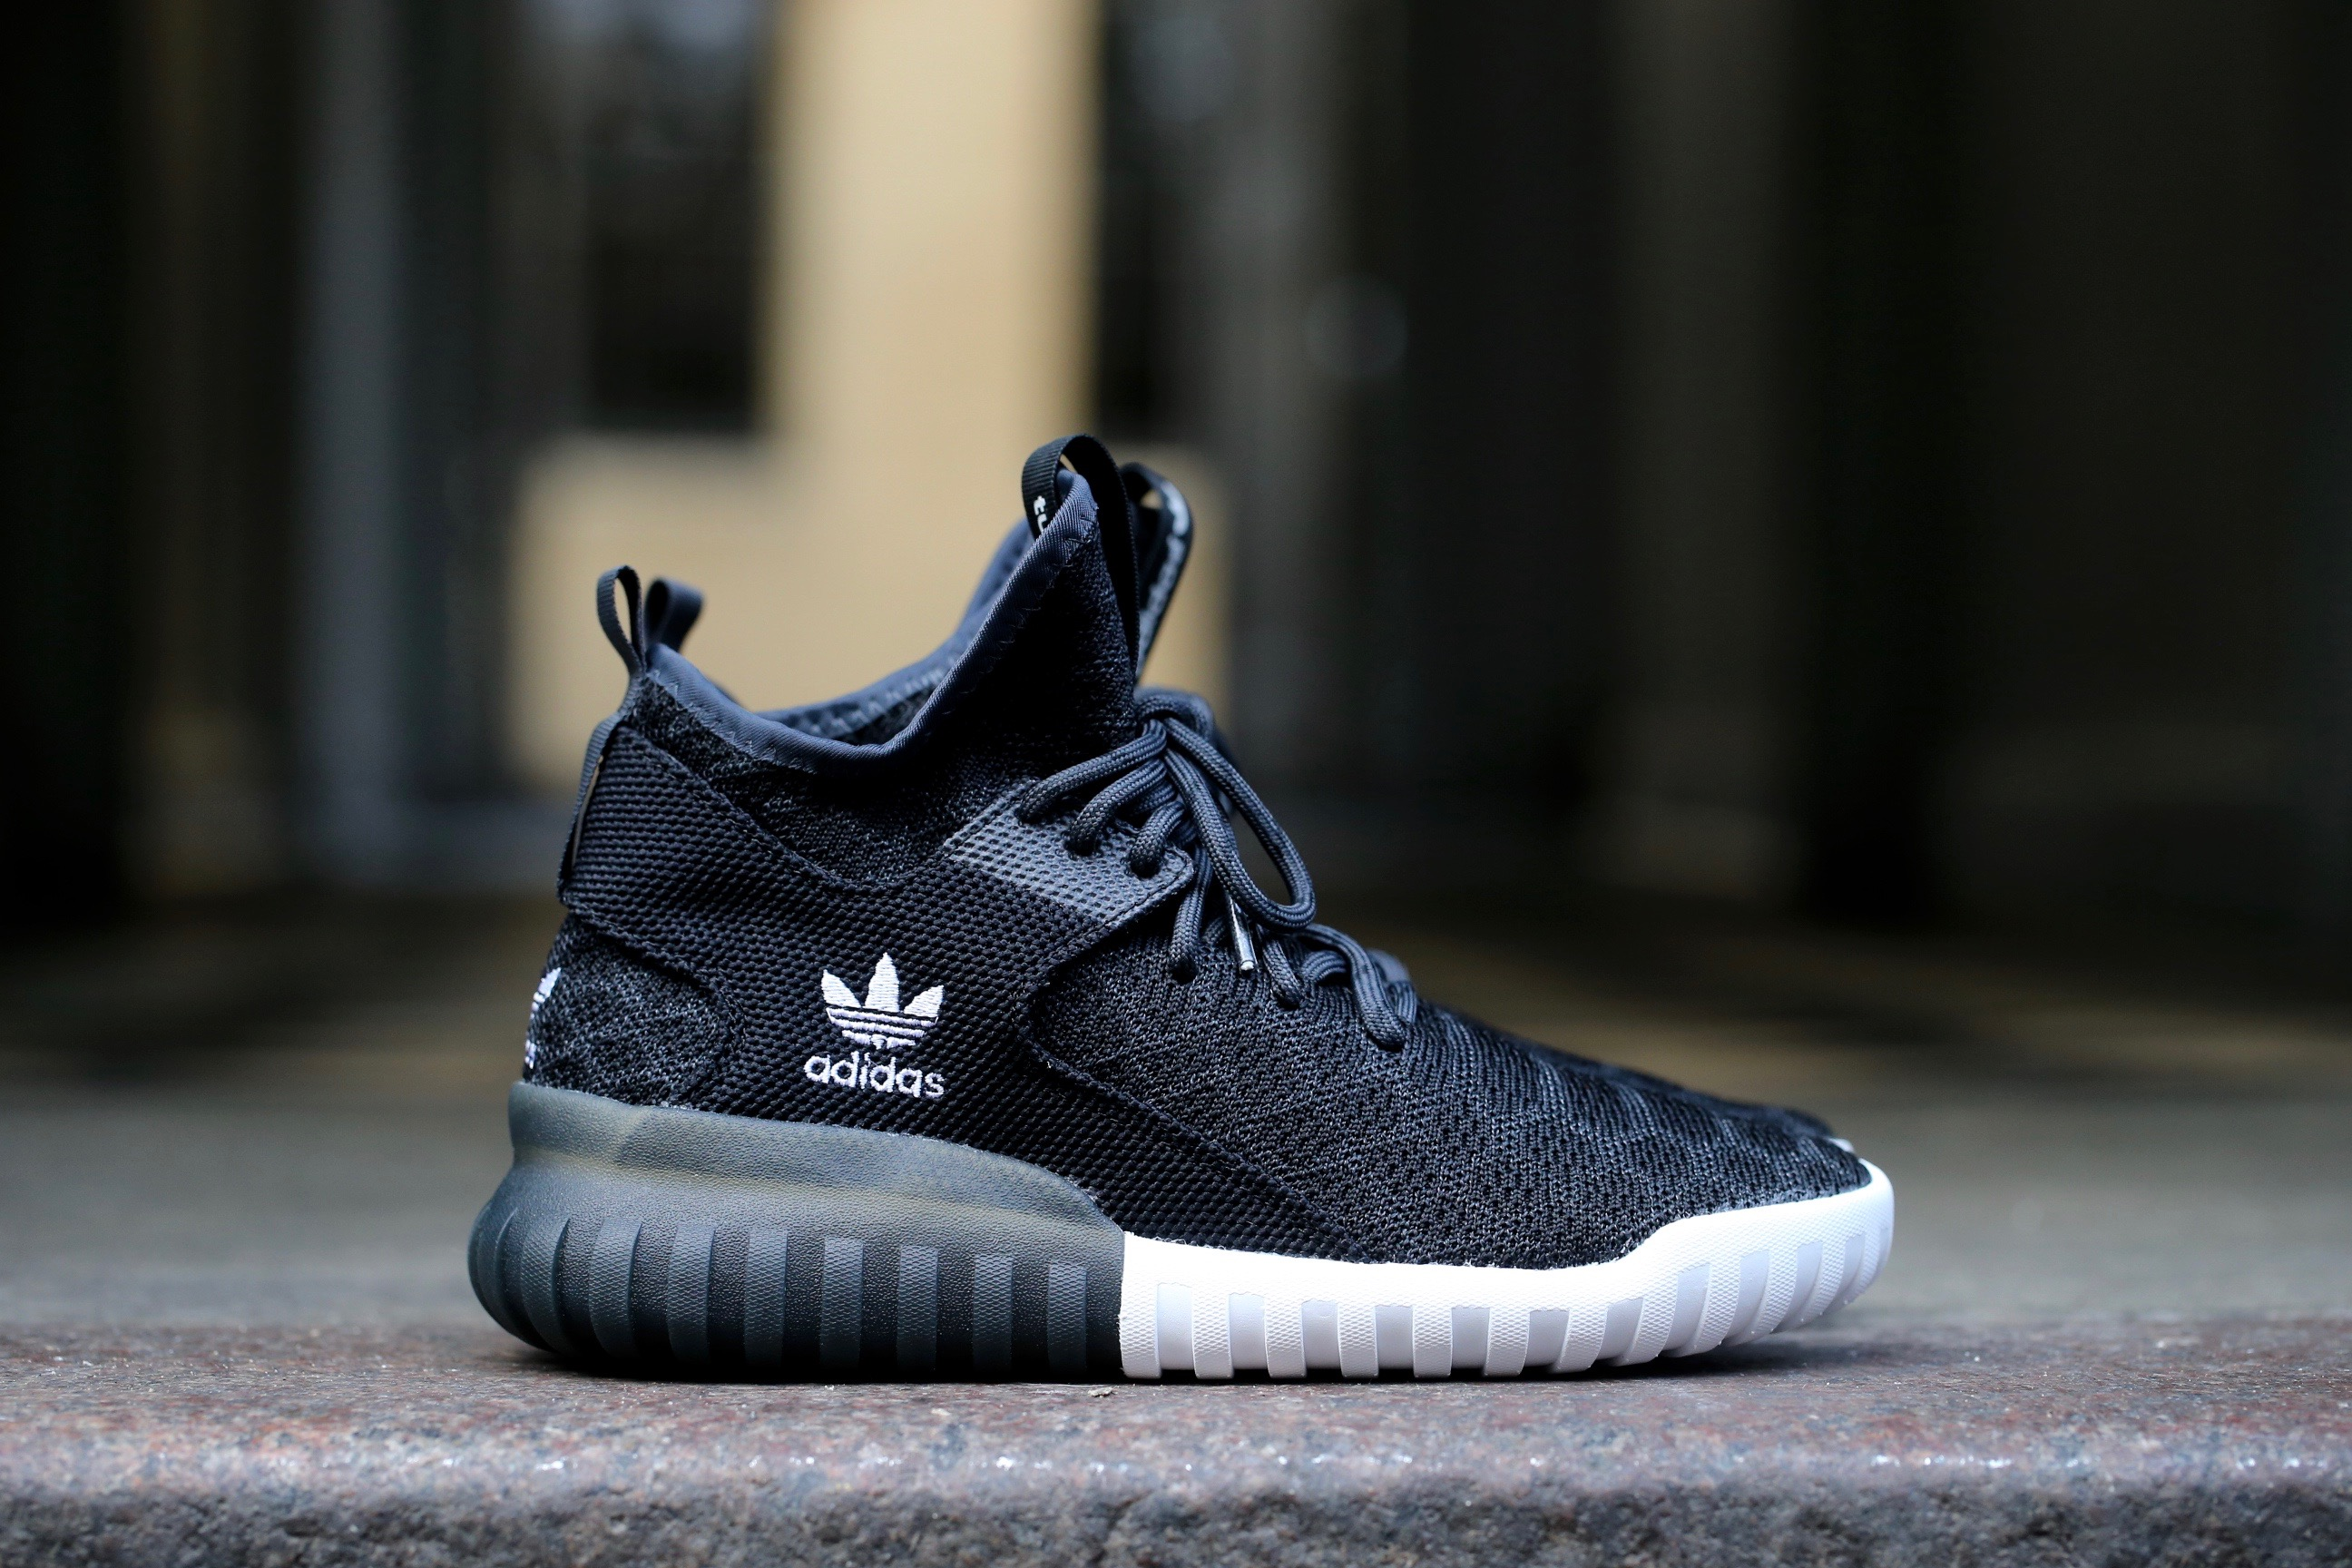 Adidas x The Fourness Tubular Runner (Solid Grey, Bold Blue & White)